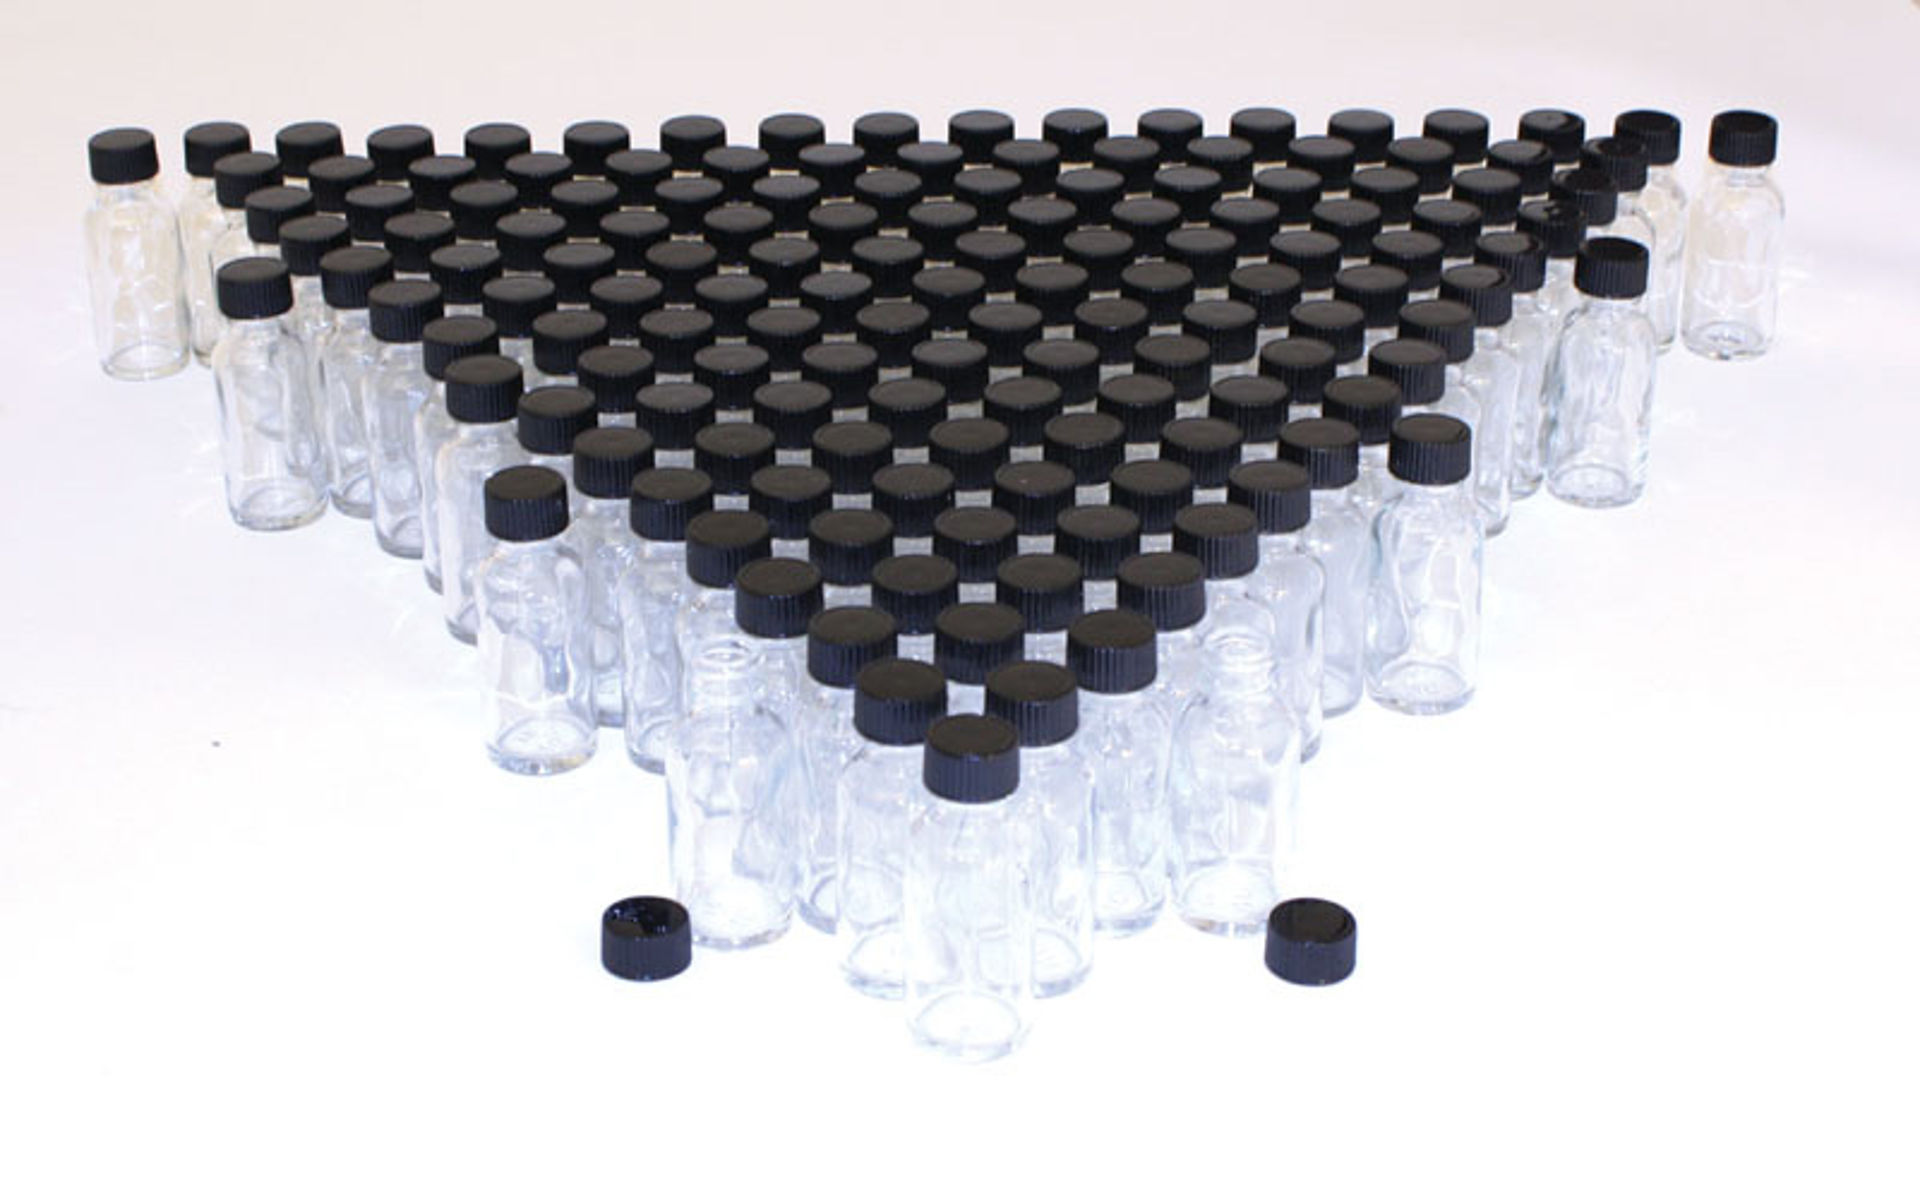 Picture of 1 oz. Glass Bottles - Set Of 144